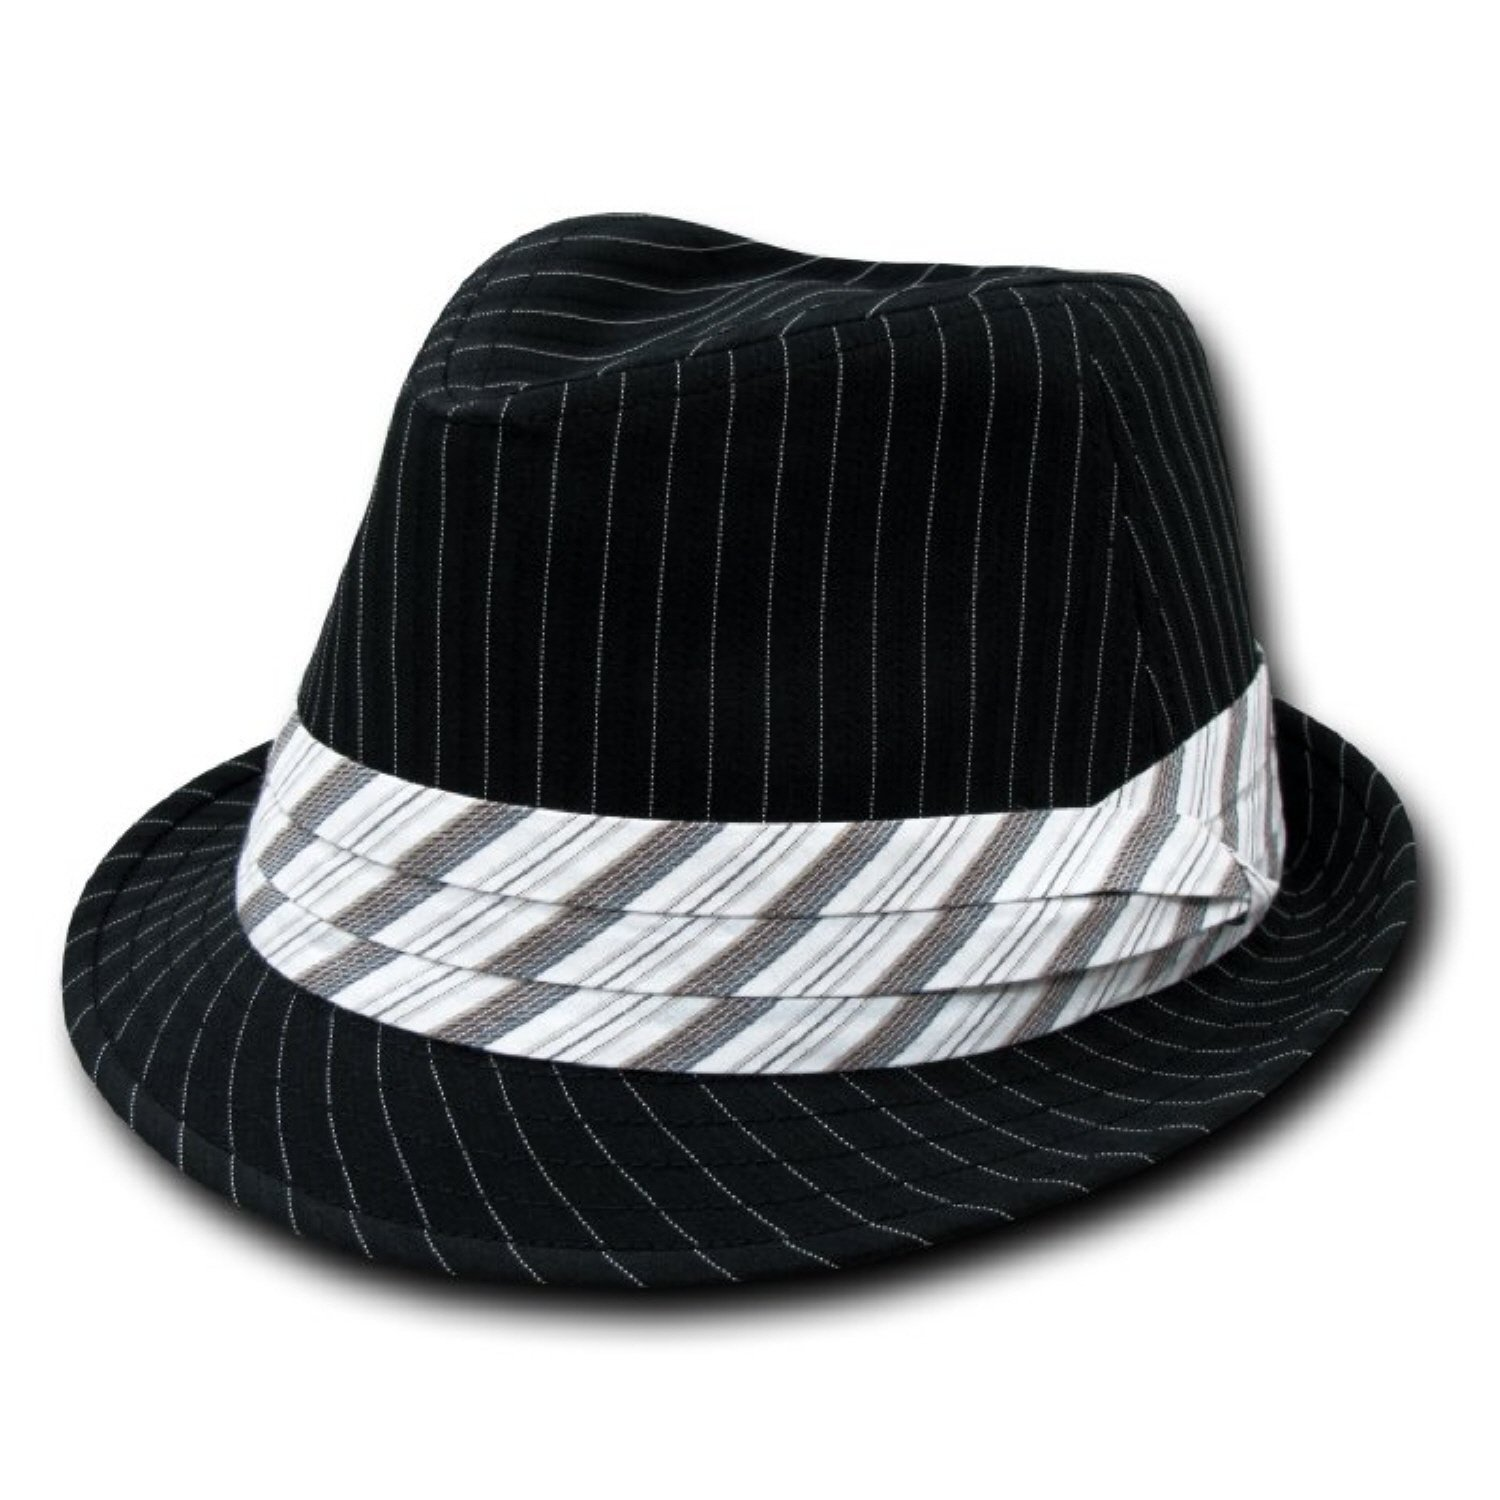 Decky Pinstripe Fedora Hat Black/White (Large/XL)